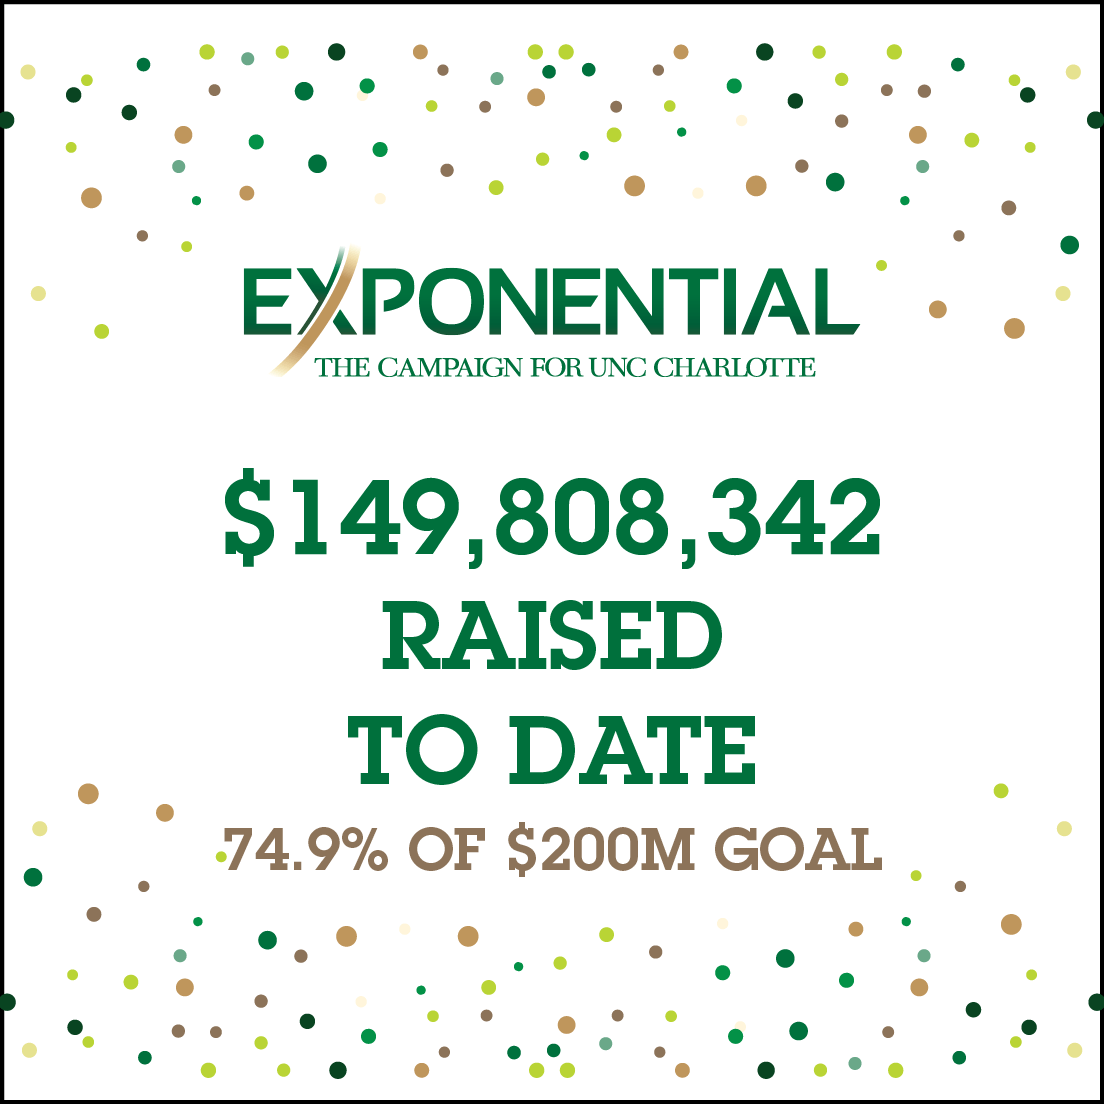 Exponential: $149,808,342 raised to date